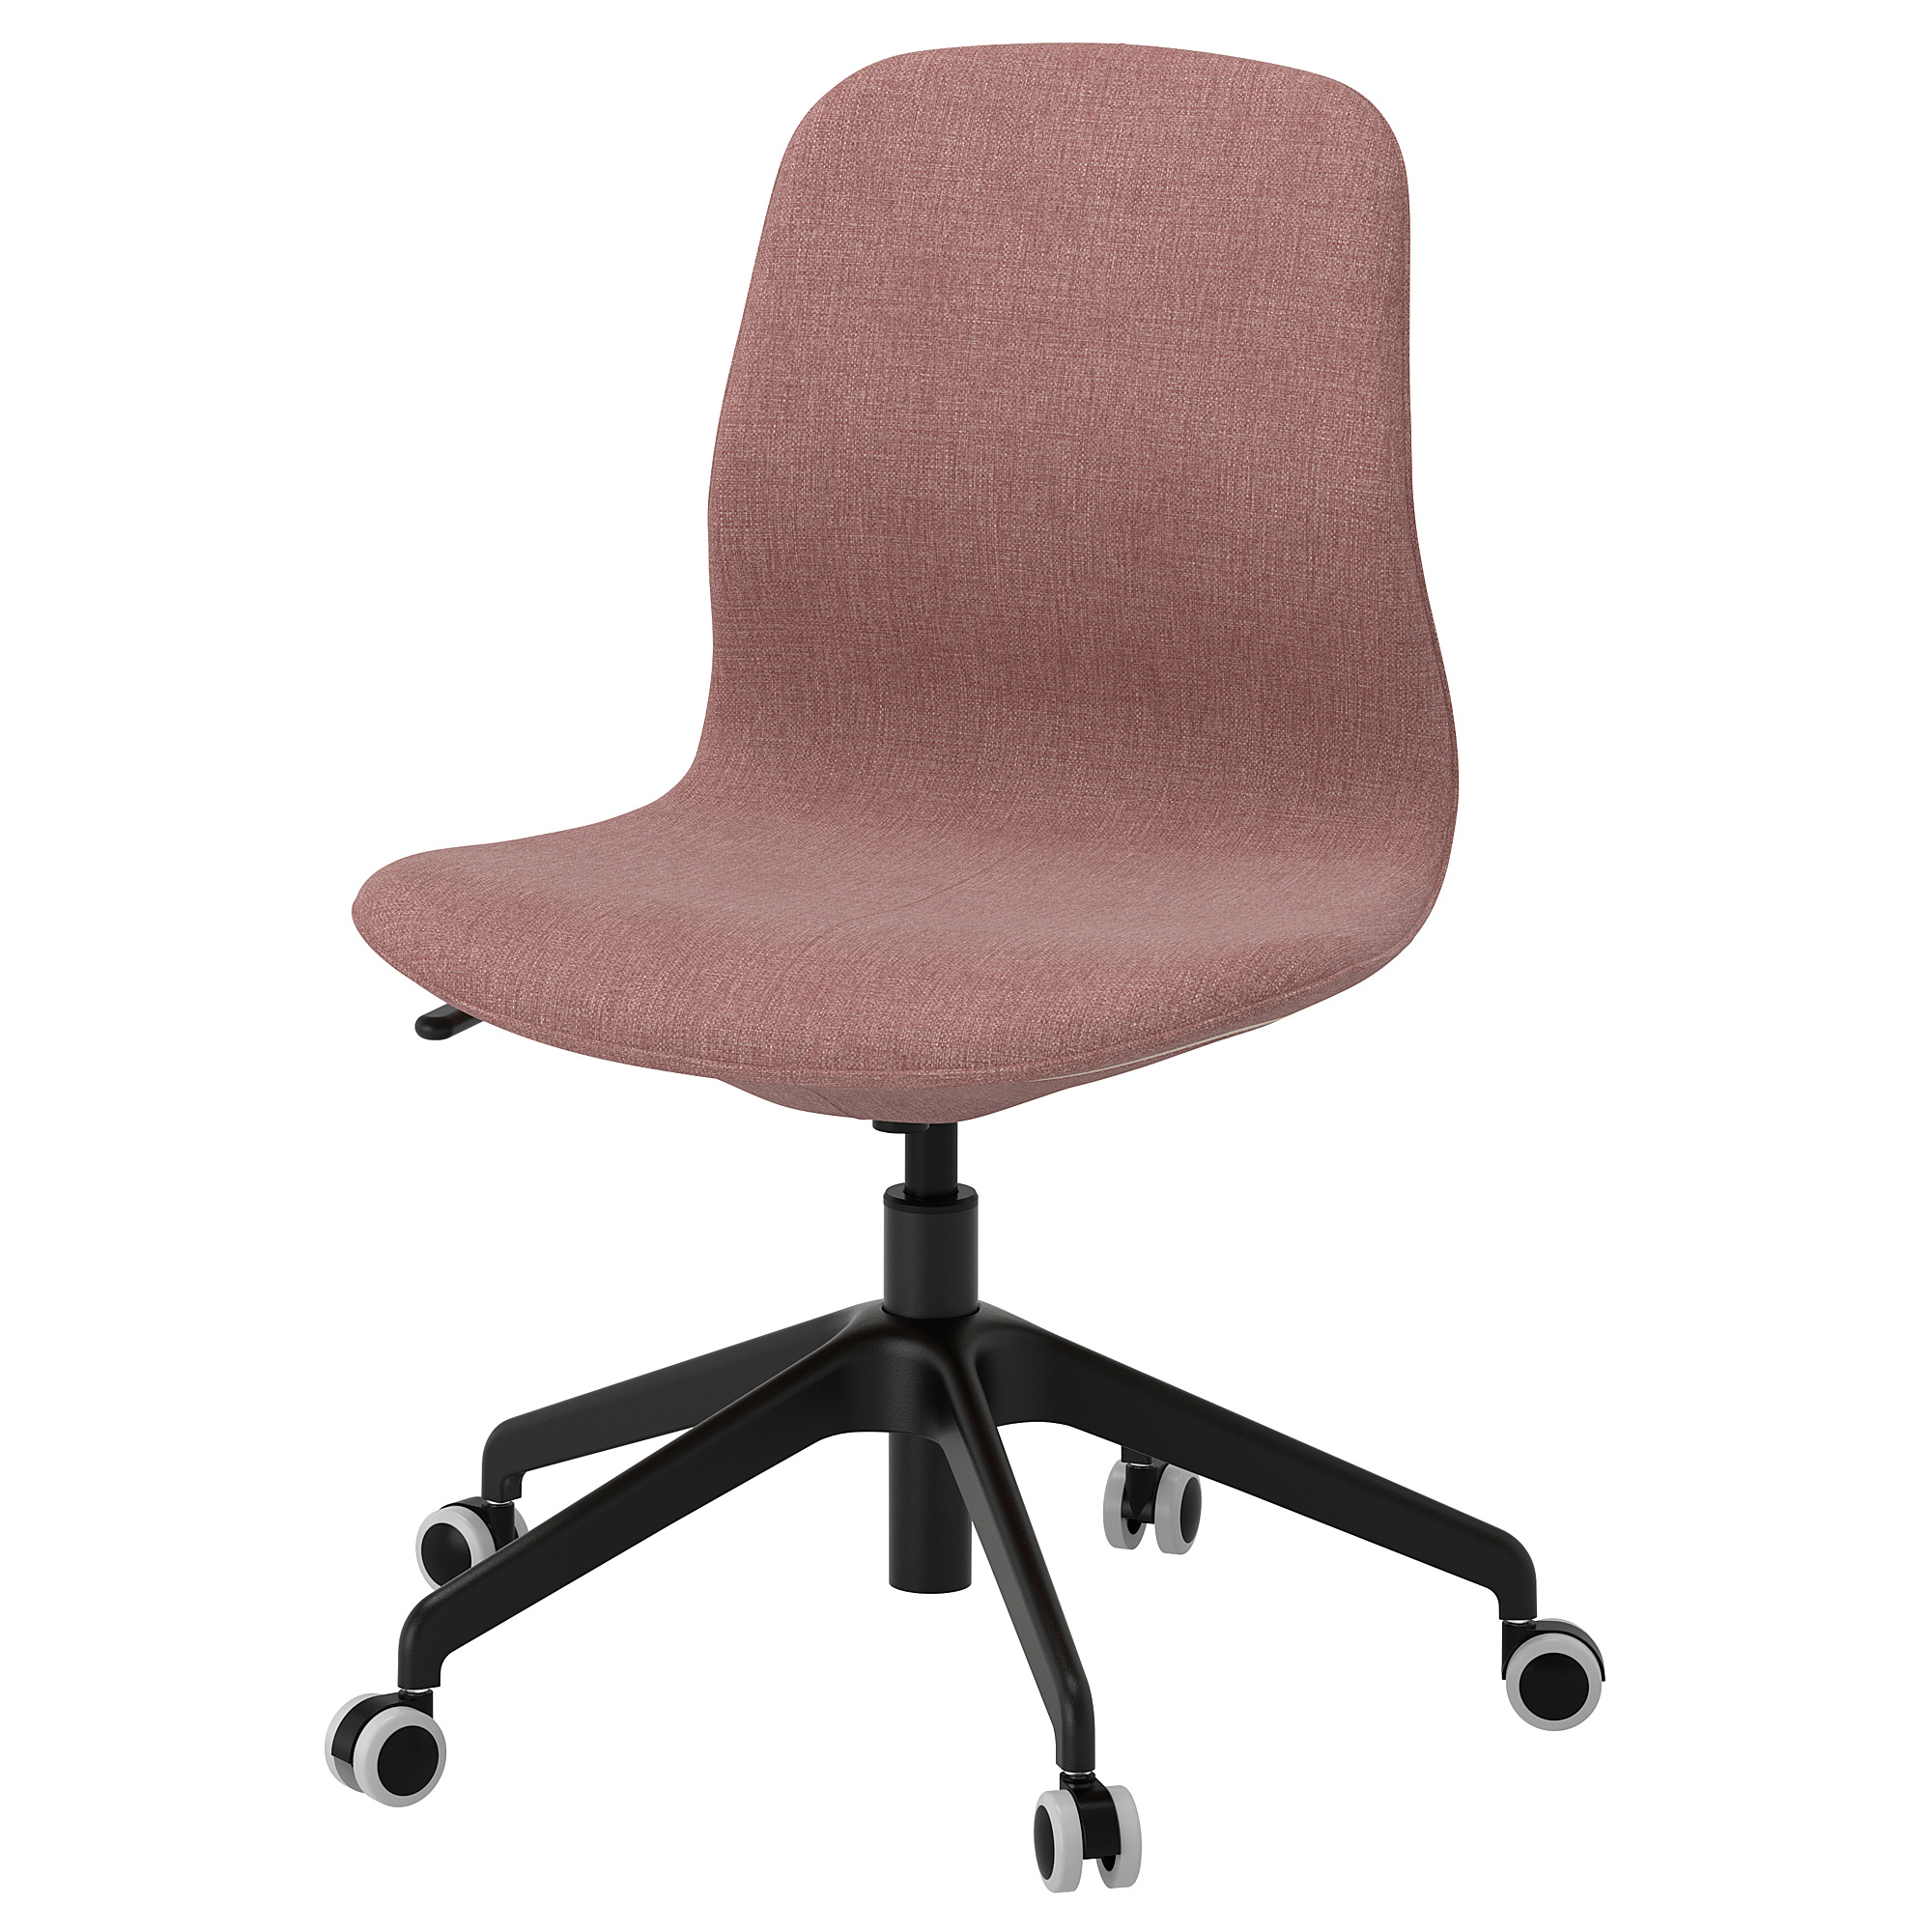 LÅNGFJÄLL Office chair Gunnared dark